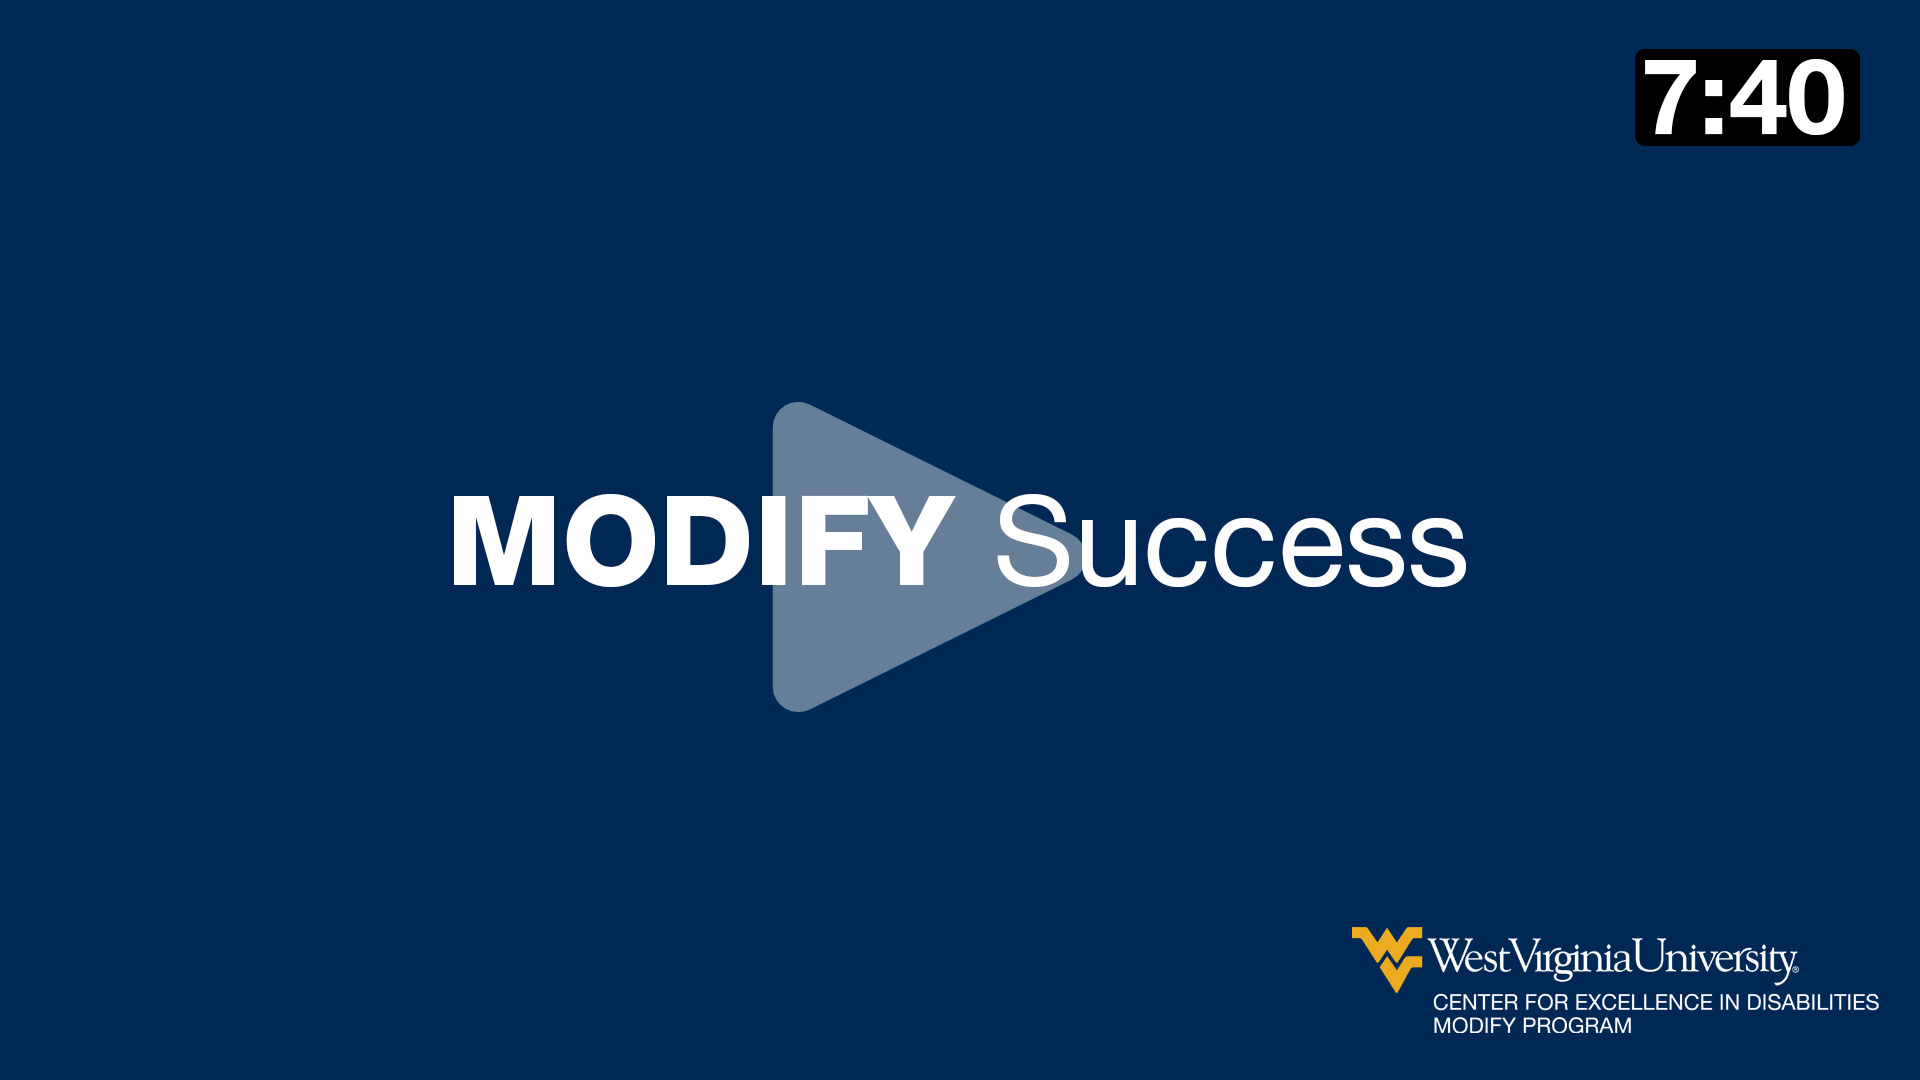 MODIFY Success